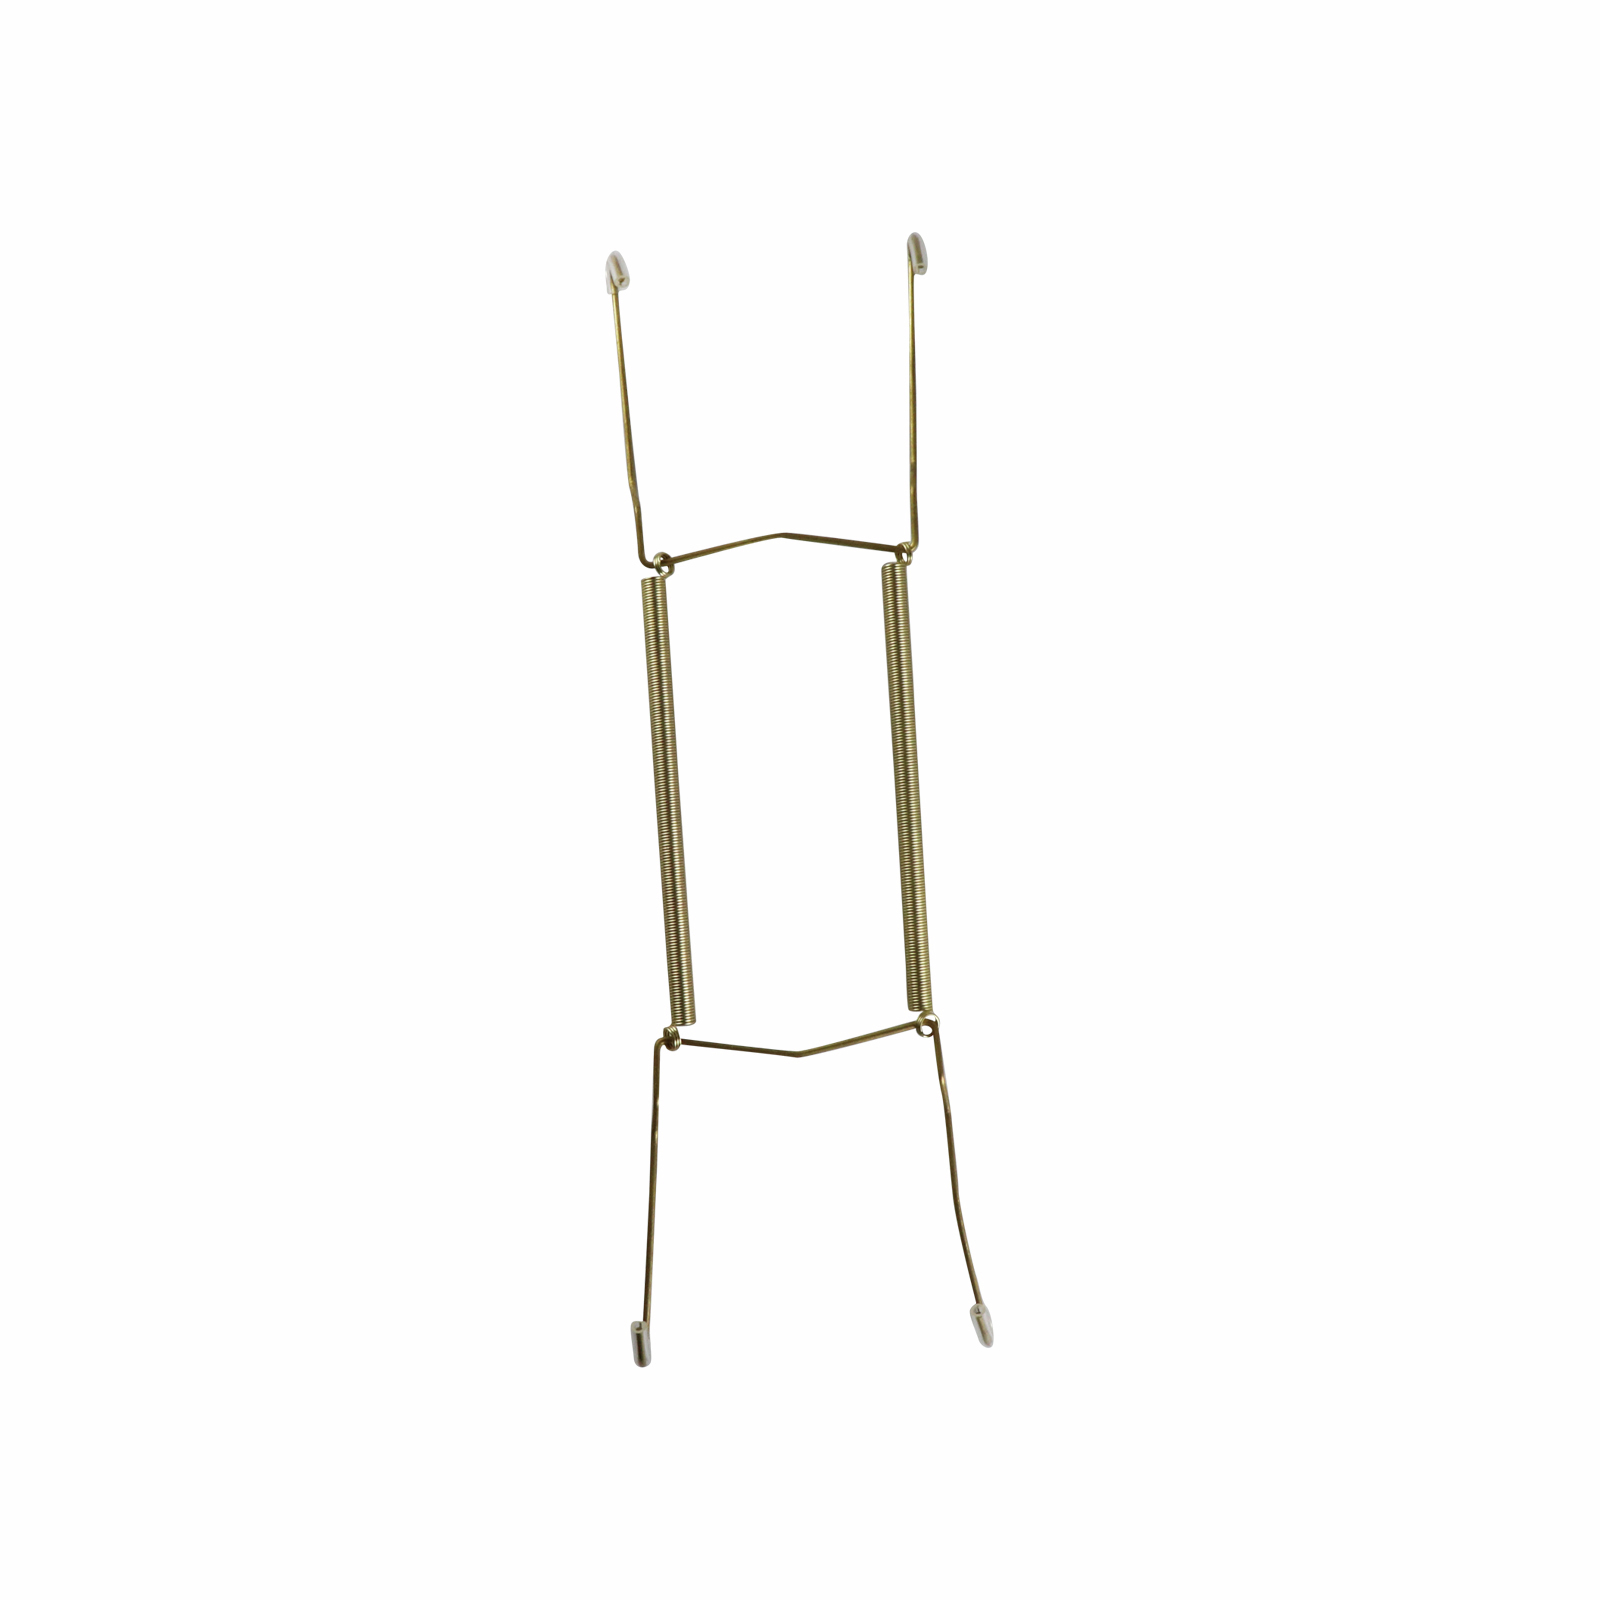 Everhang 25 - 36cm Brass Plated Hanging Plate Wires